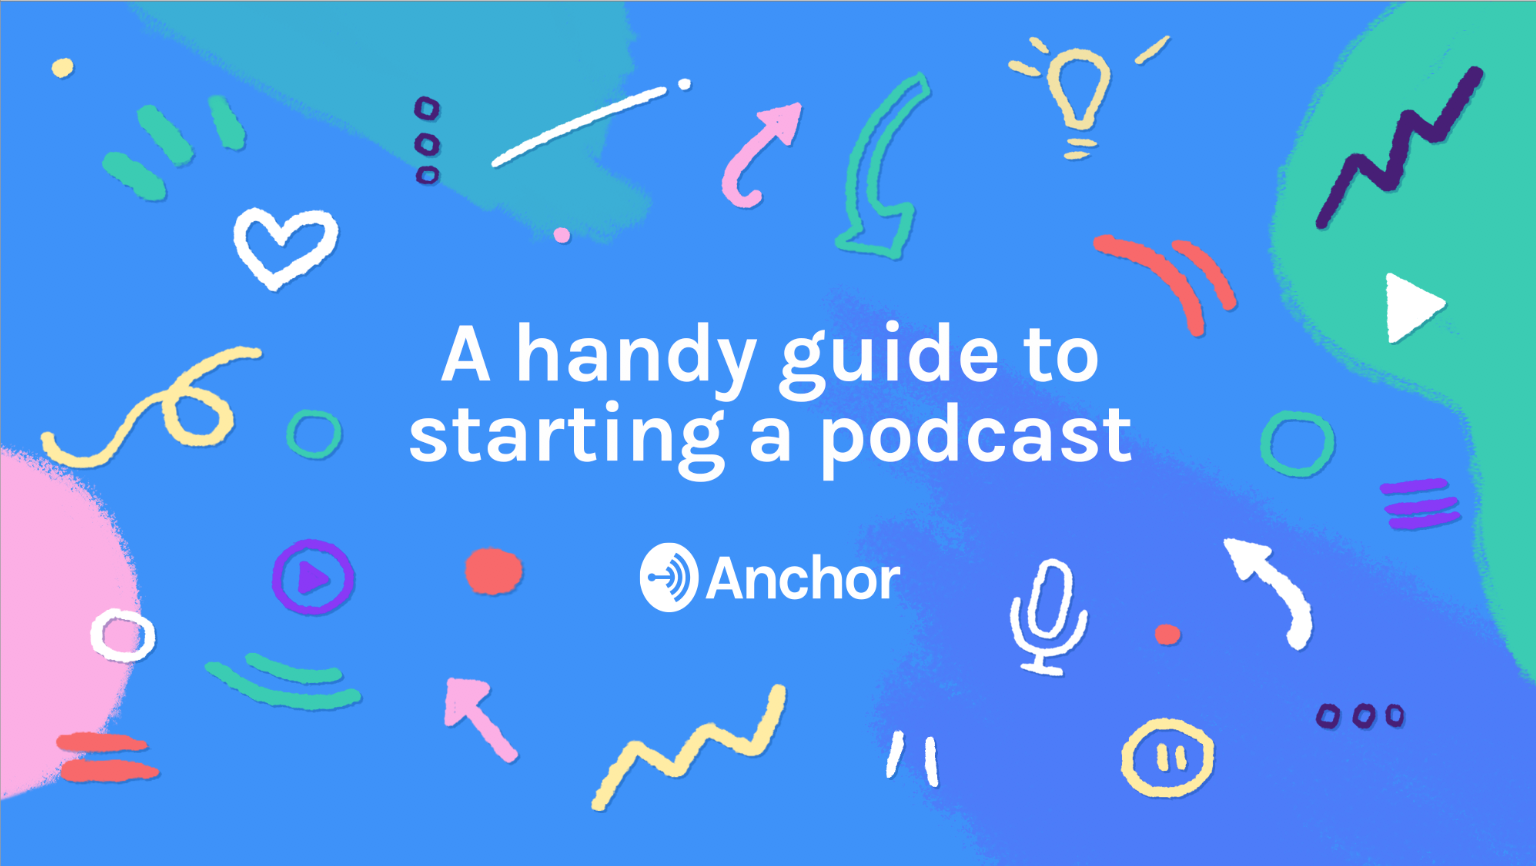 A handy guide to starting your podcast